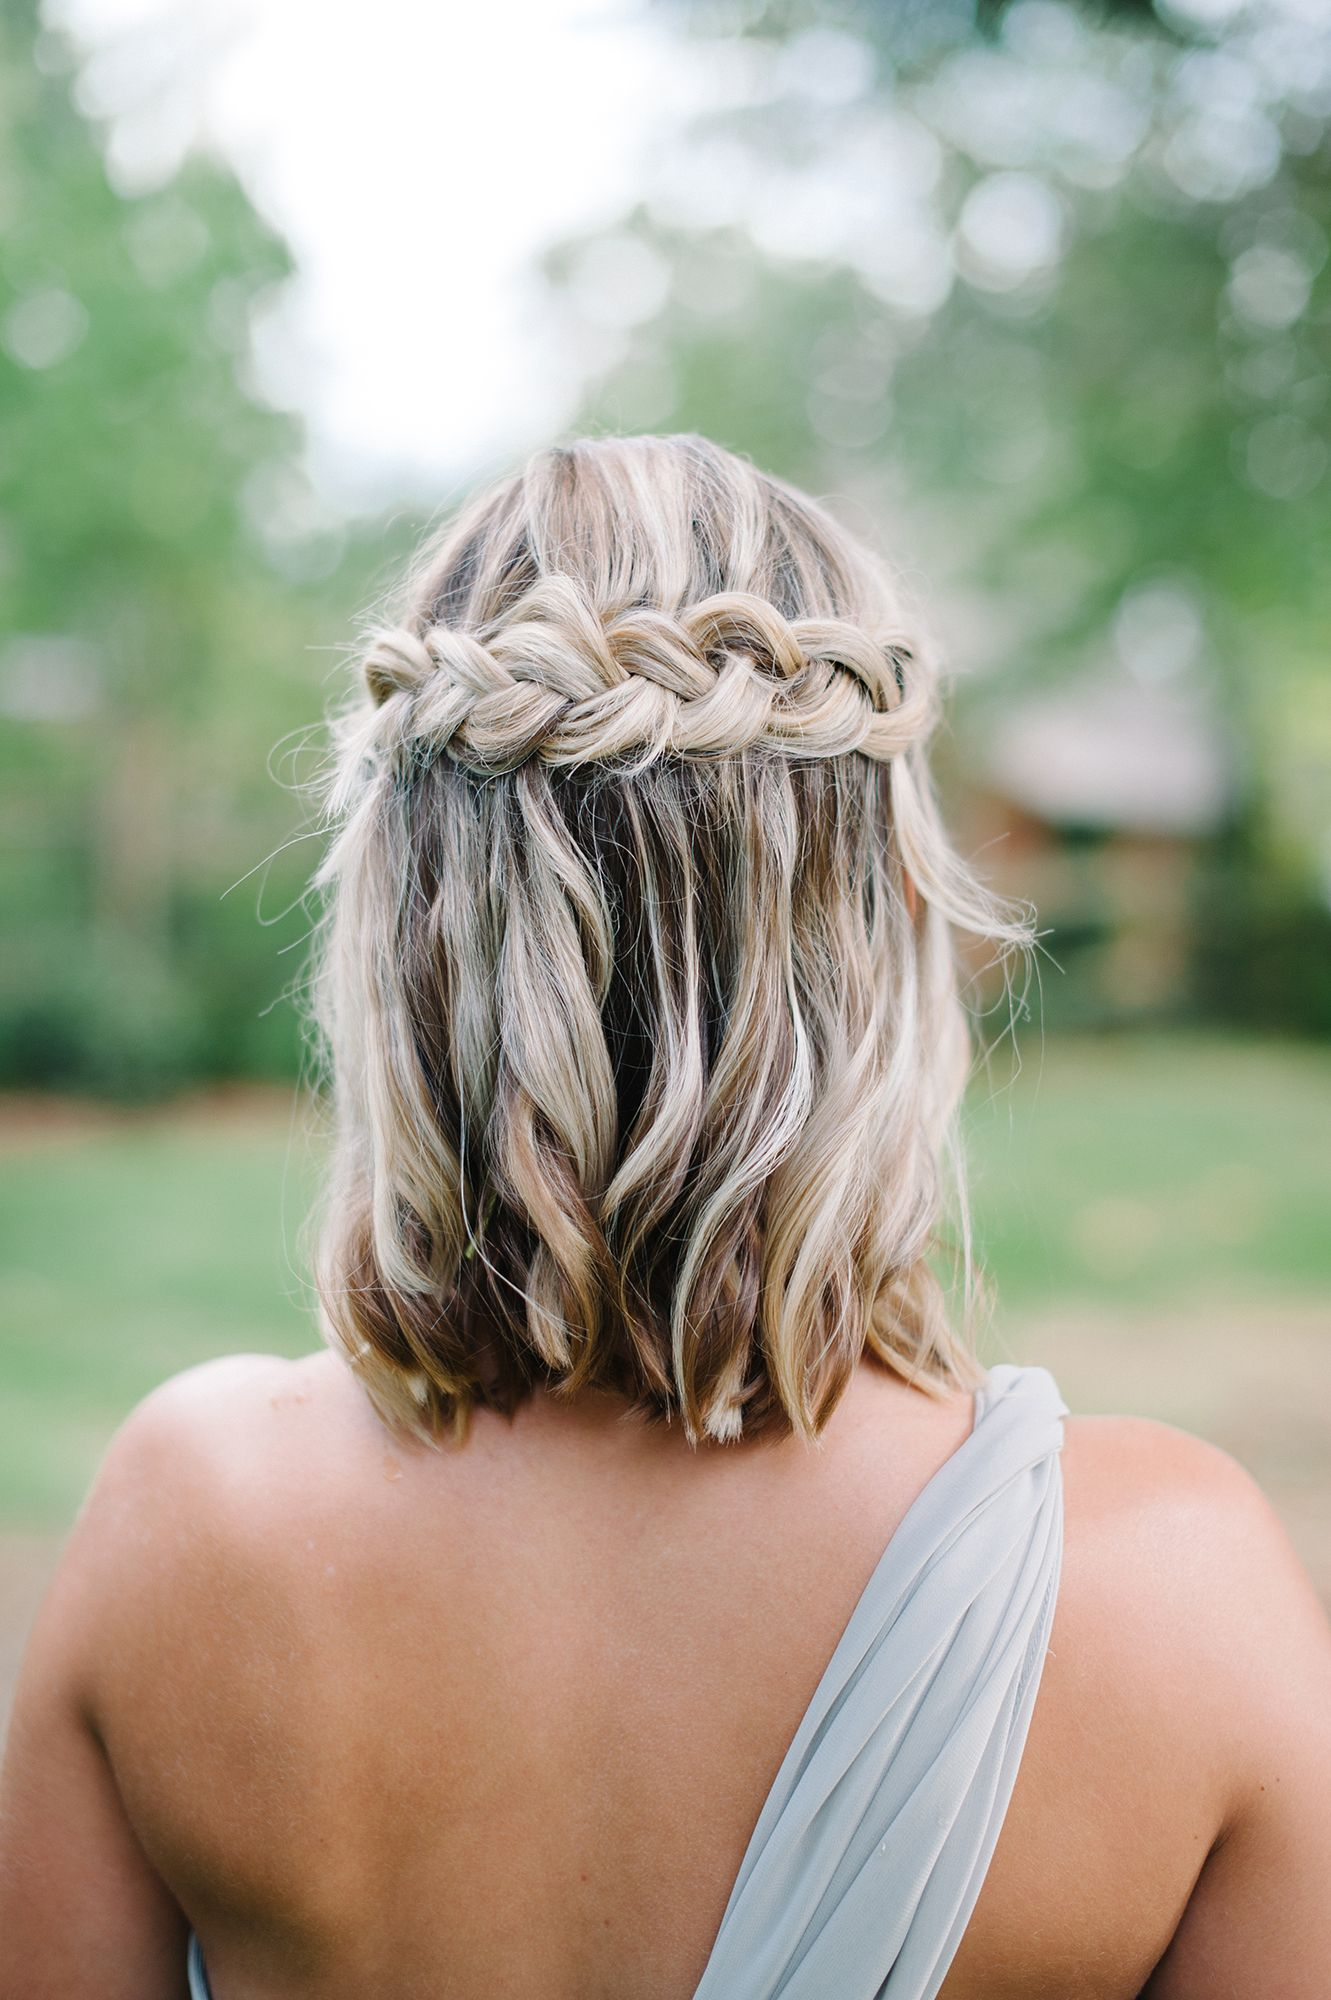 Beautiful Easy Going Wedding Short Hair Styles Hair Styles Short Wedding Hair